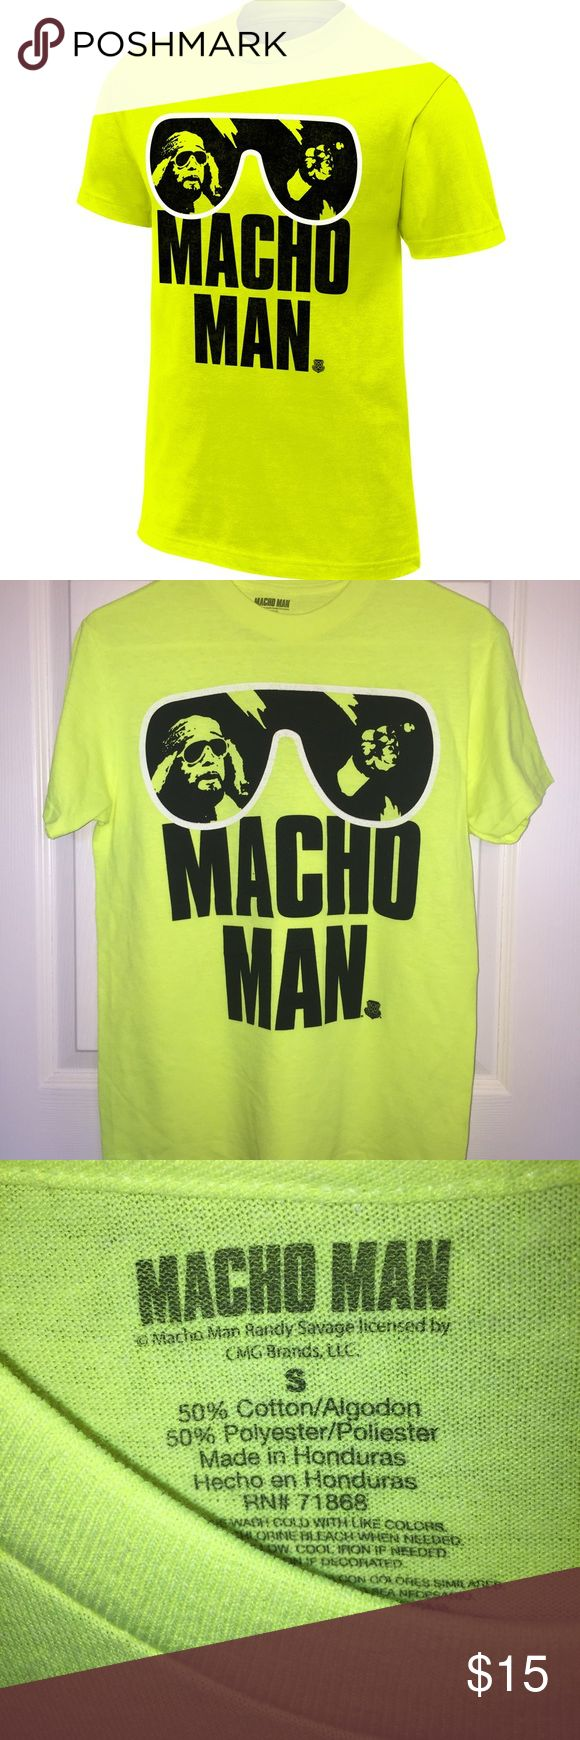 """""""Macho Man"""" Randy Savage WWE Retro Tee - Small Greatest of all time? Greatest wrestling tee ever? Hard to argue either, so scoop this iconic """"Macho Man"""" Randy Savage tee while you can!  * New * Never worn * Never came with tags * From the WWE website * Bright (almost a fluorescent yellow) * 50% cotton * 50% polyester  Take a look at everything I have for sale!   I am always adding new items!  Feel free to make an offer.   I discount purchases that are bundled!  Ooooohhh yeaaaaa! Thank you…"""